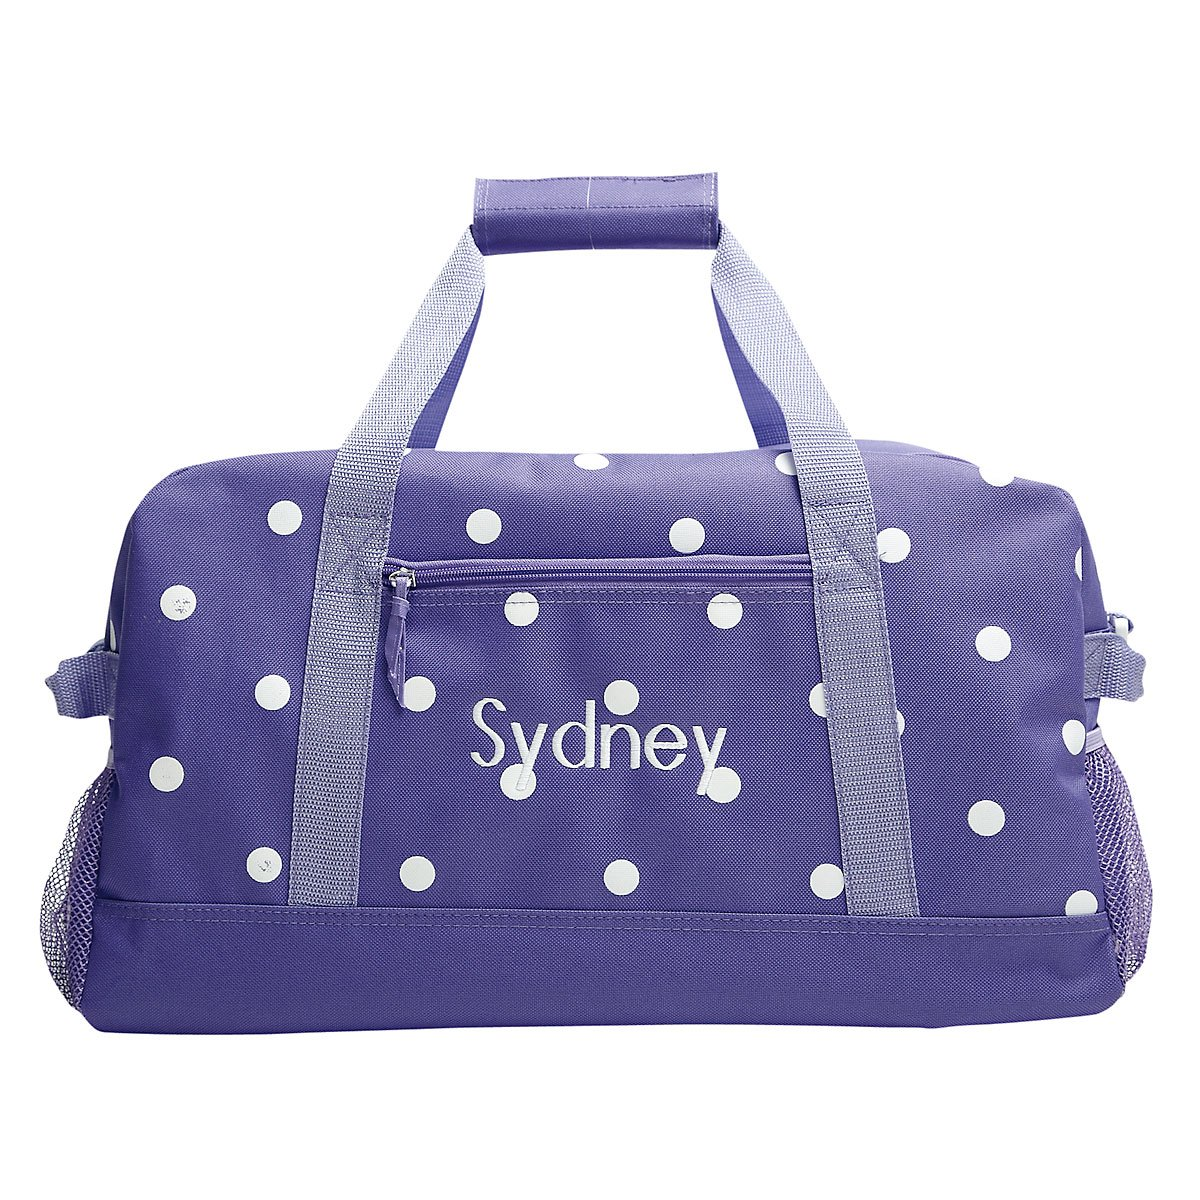 Personalized Kids Purple with White Dots Small Duffel Bag, Girls sports bag (9'' by 10 1/2 by 19'')